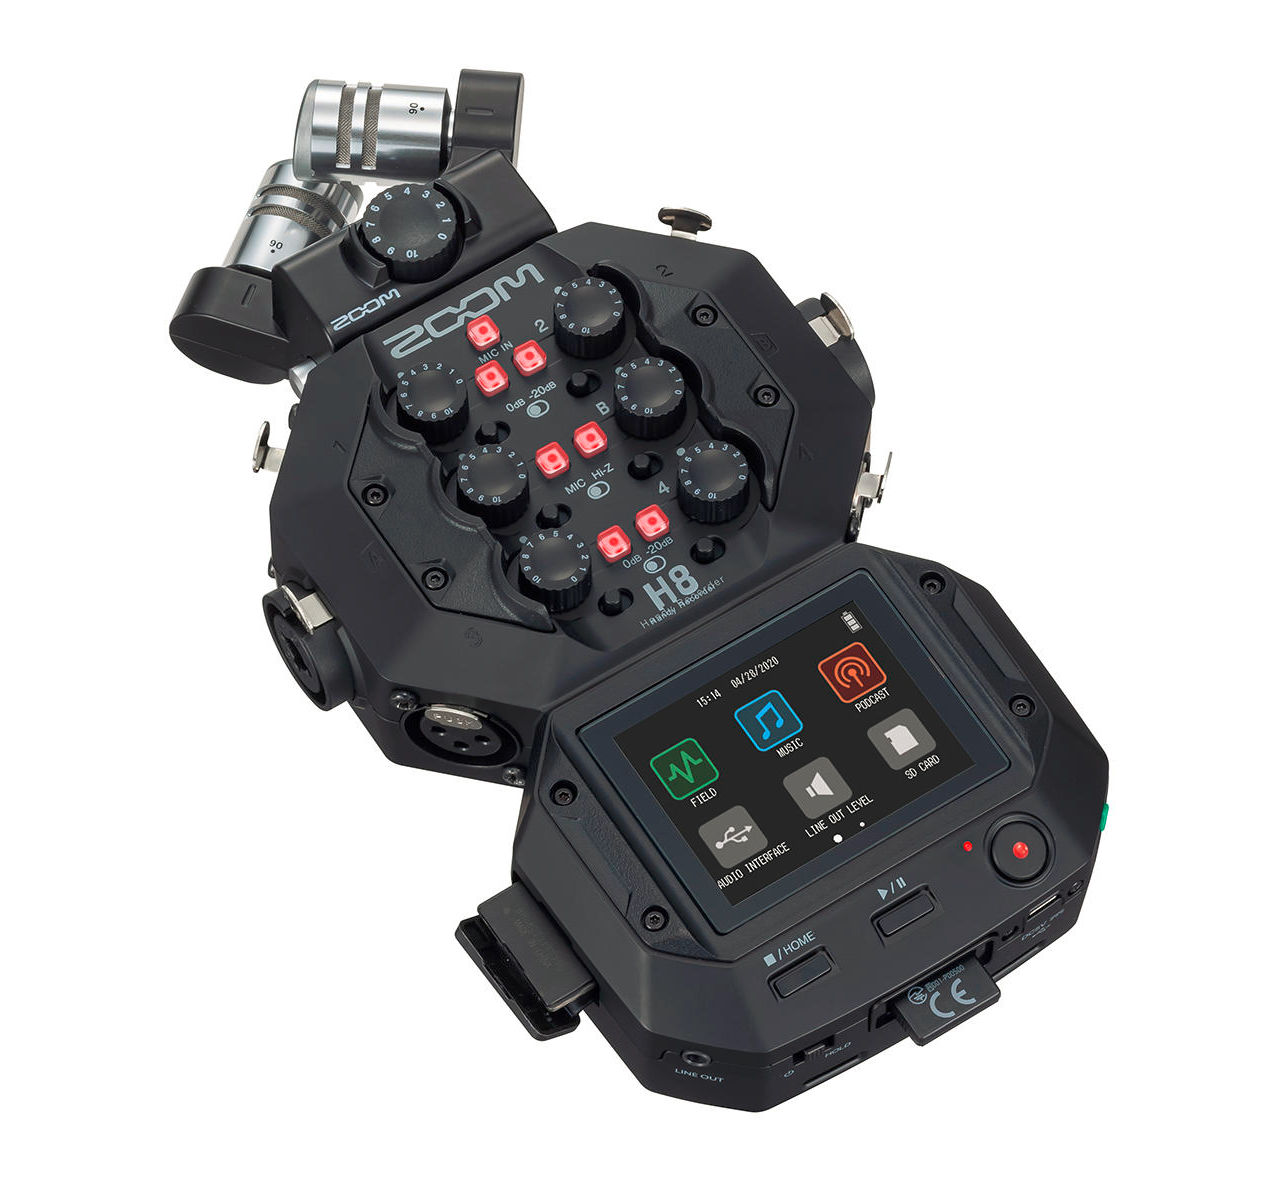 Zoom H8 Handy Recorder offers up to 10 XLR microphone-inputs